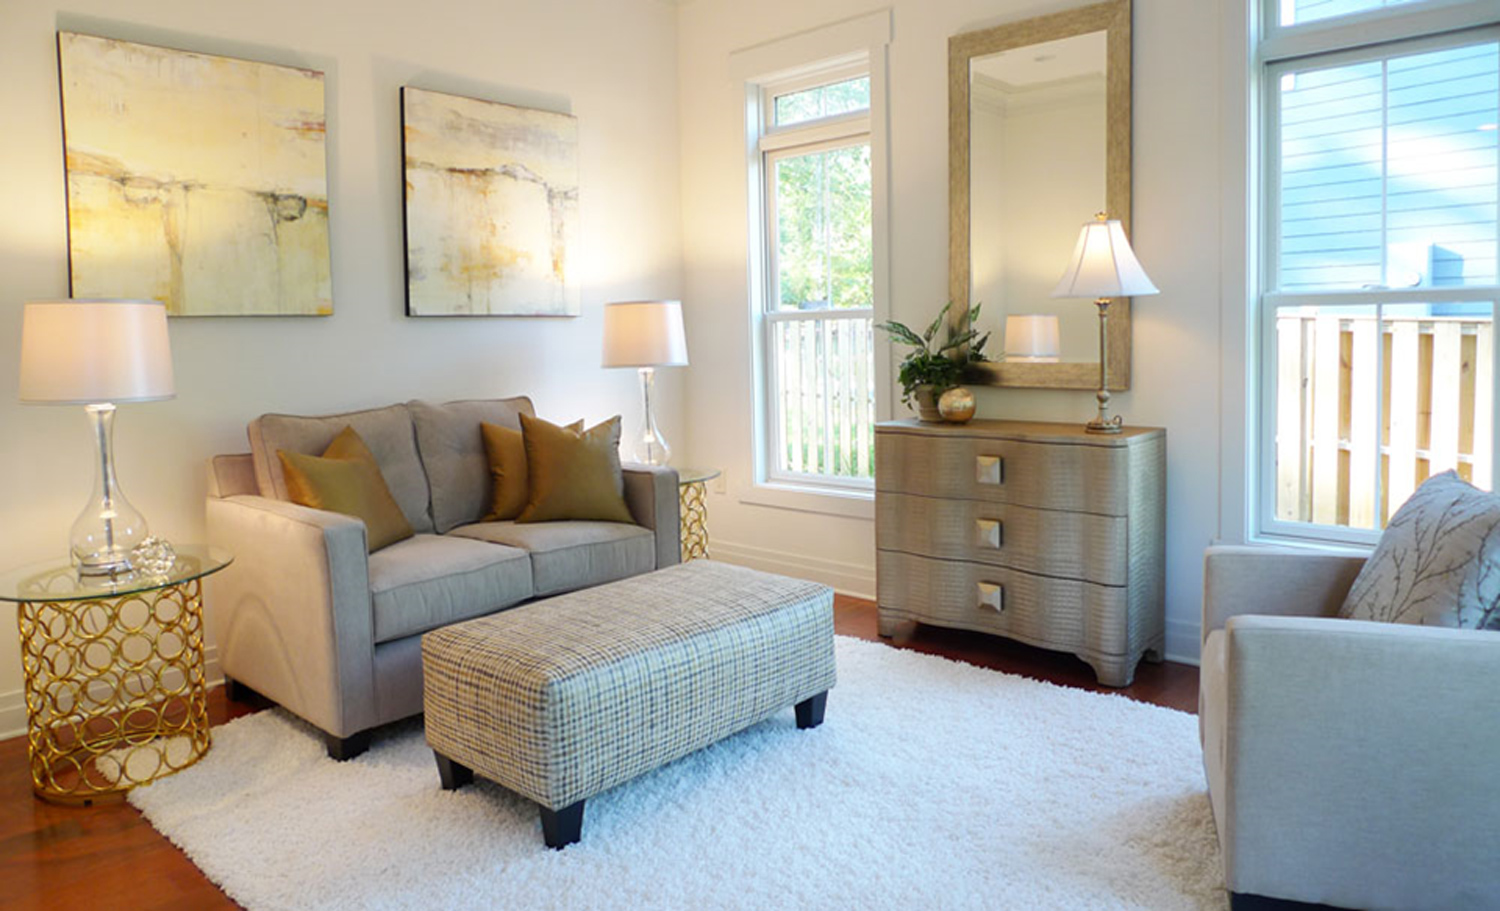 Washington DC Home Staging Blog — Preferred Staging, LLC